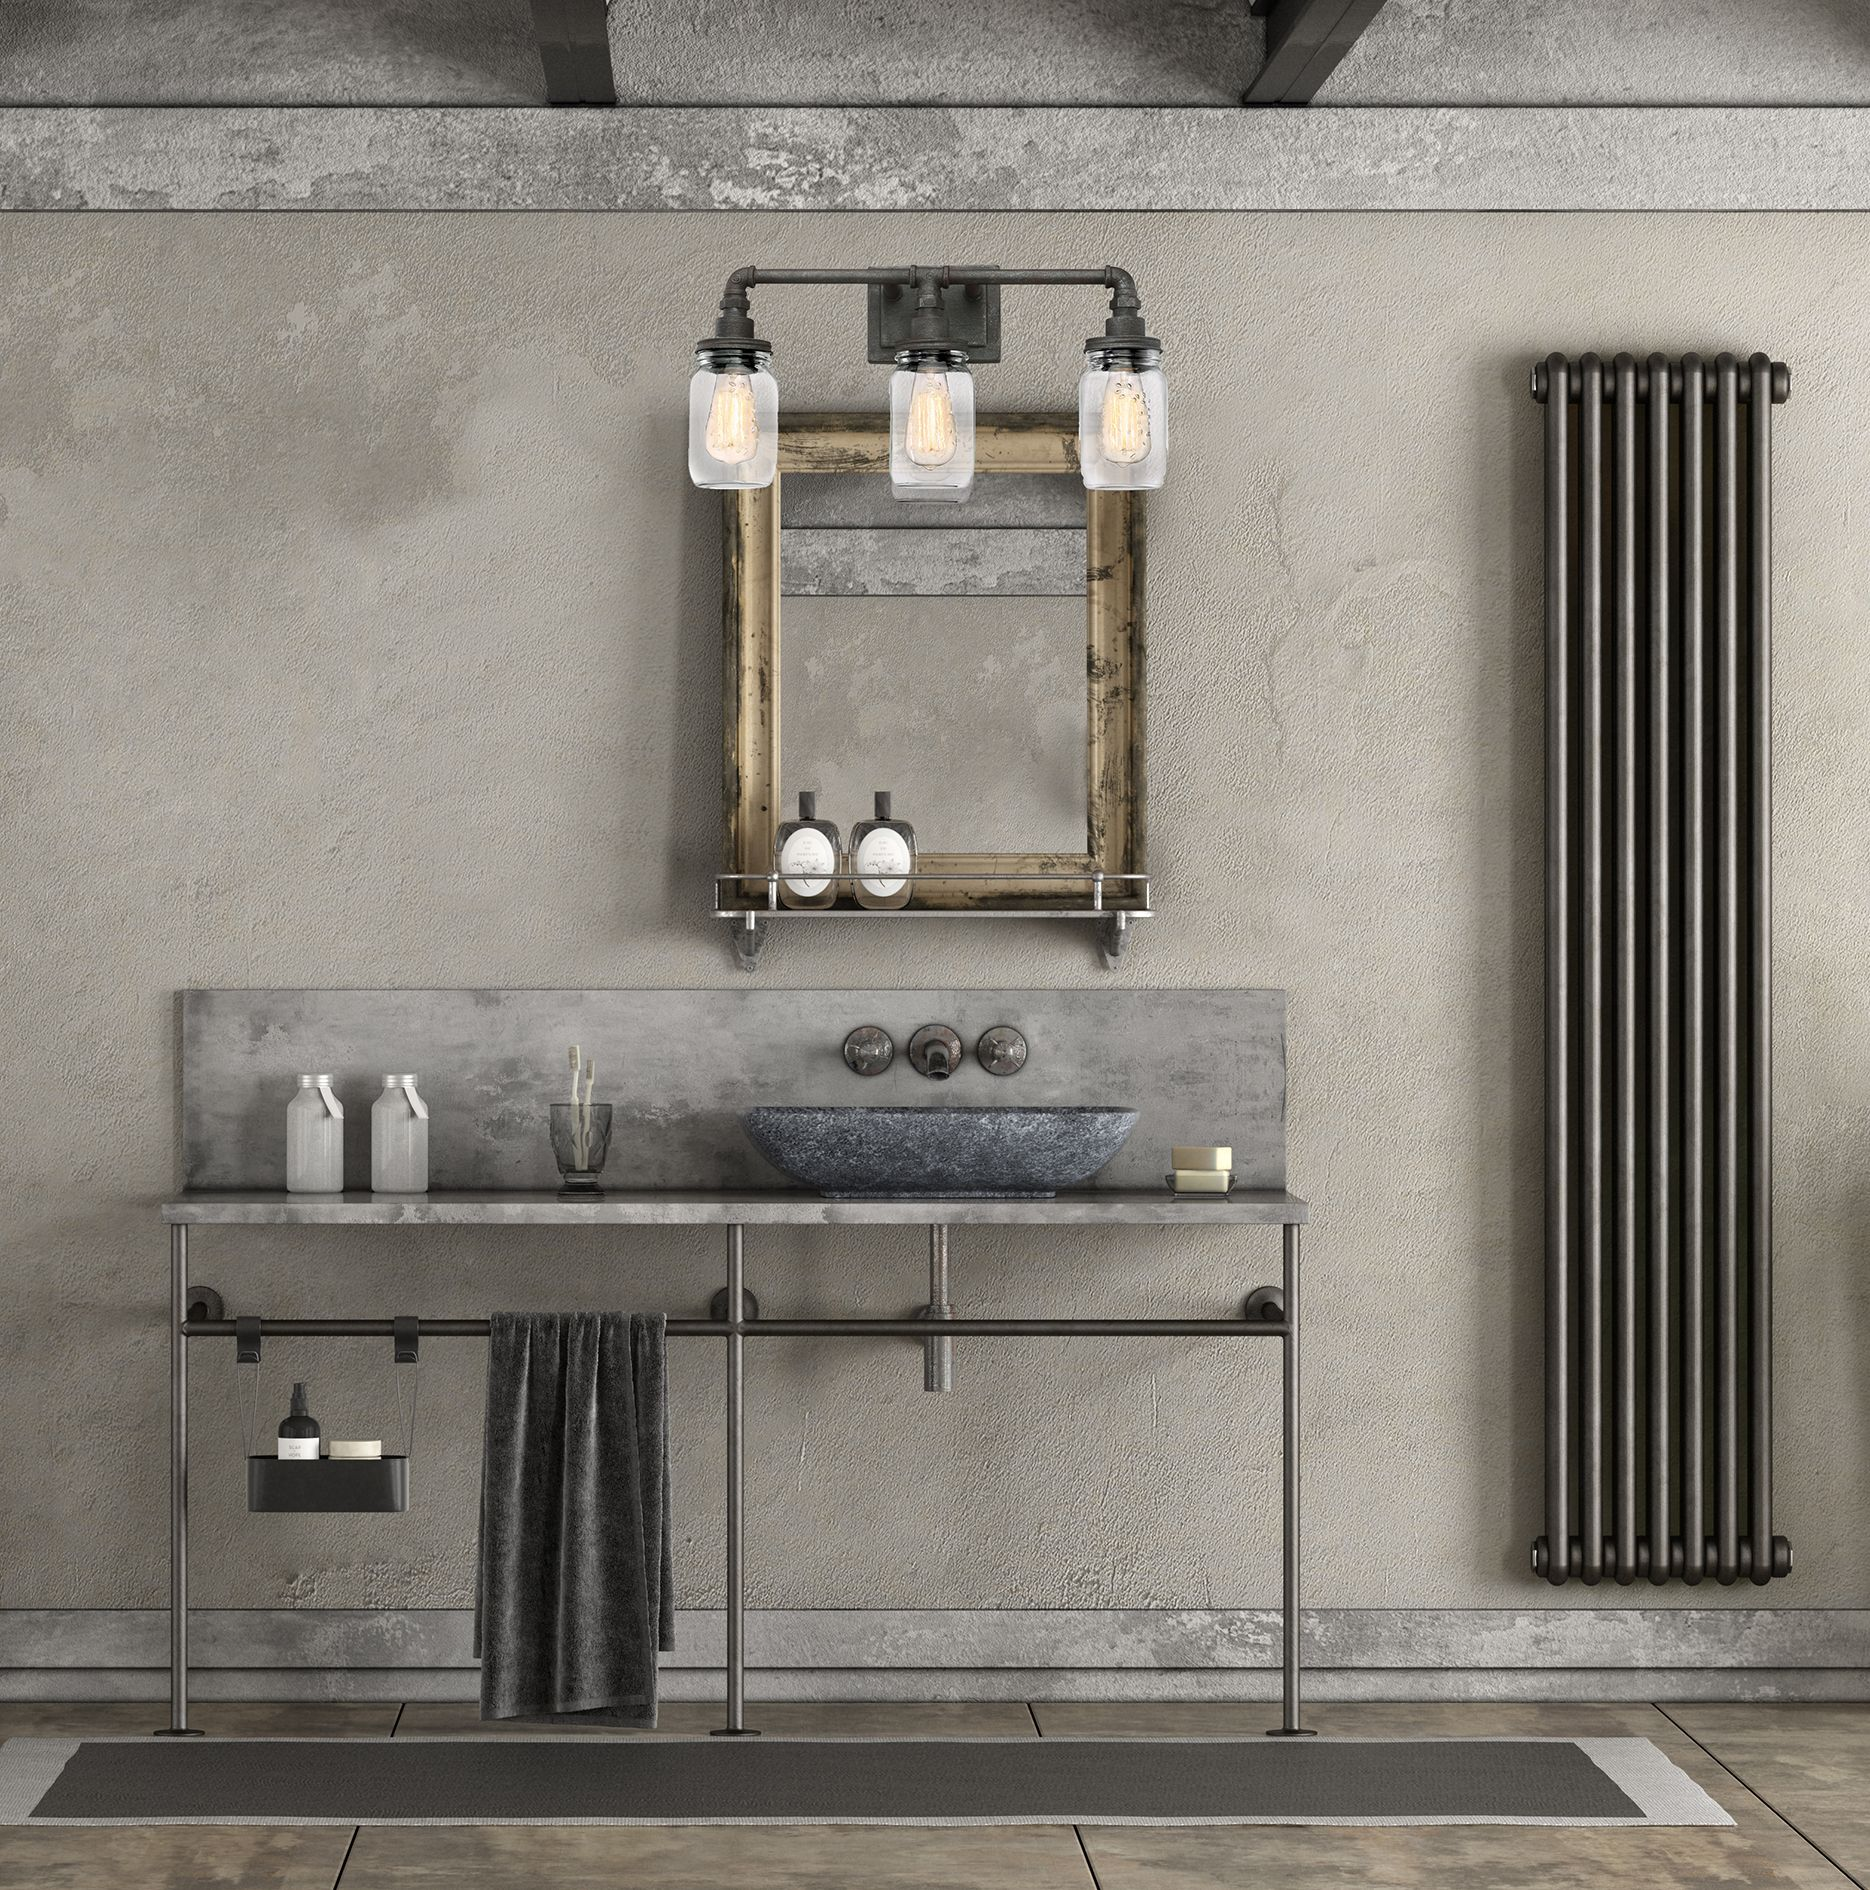 Quoizel Squire 21 5 Quot 3 Light Clear Glass Bathroom Vanity